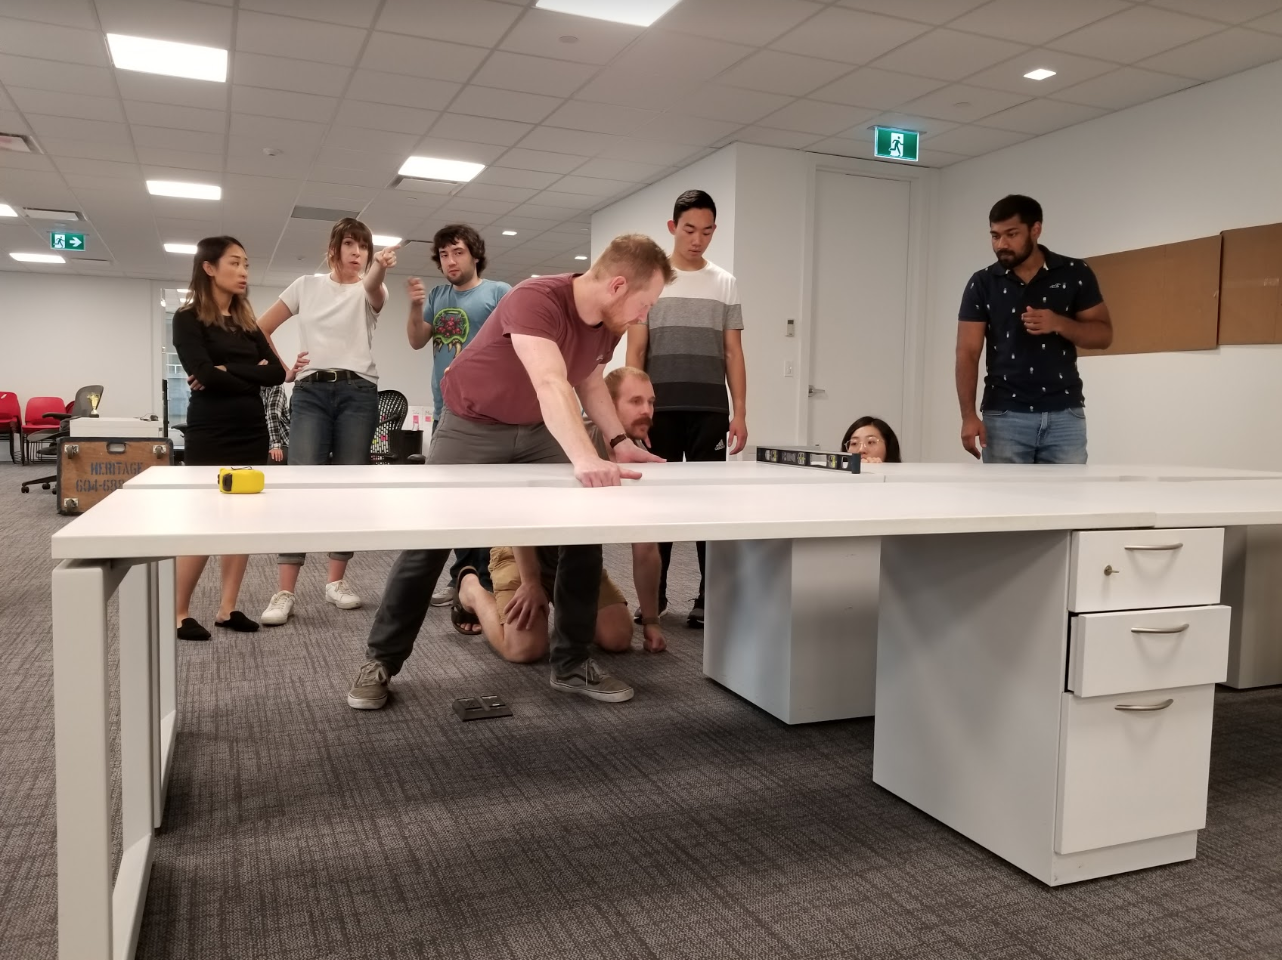 group of people assembling a desk